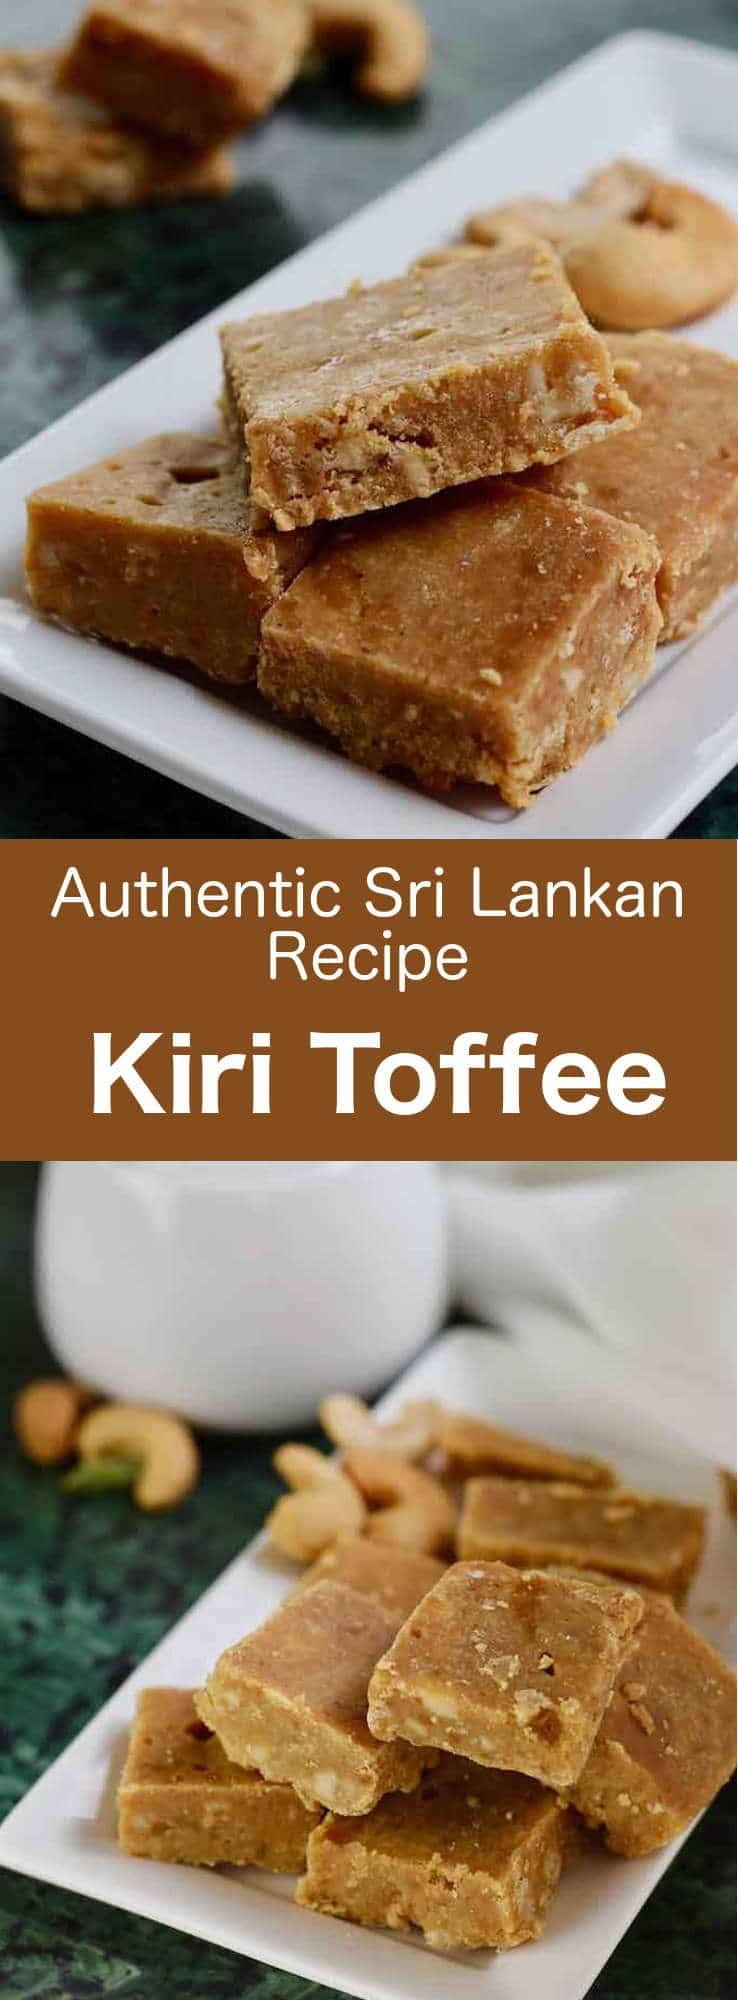 Kiri aluwa (milk toffee or kiri toffee) is a traditional recipe of delicious cardamom flavored soft toffee with crunchy cashew nuts, that is very popular in Sri Lanka. #SriLanka #SriLankanCuisine #SriLankanDessert #Dessert #DessertRecipe #SriLankanRecipe #Toffee #ToffeeRecipe #WorldCuisine #196flavors